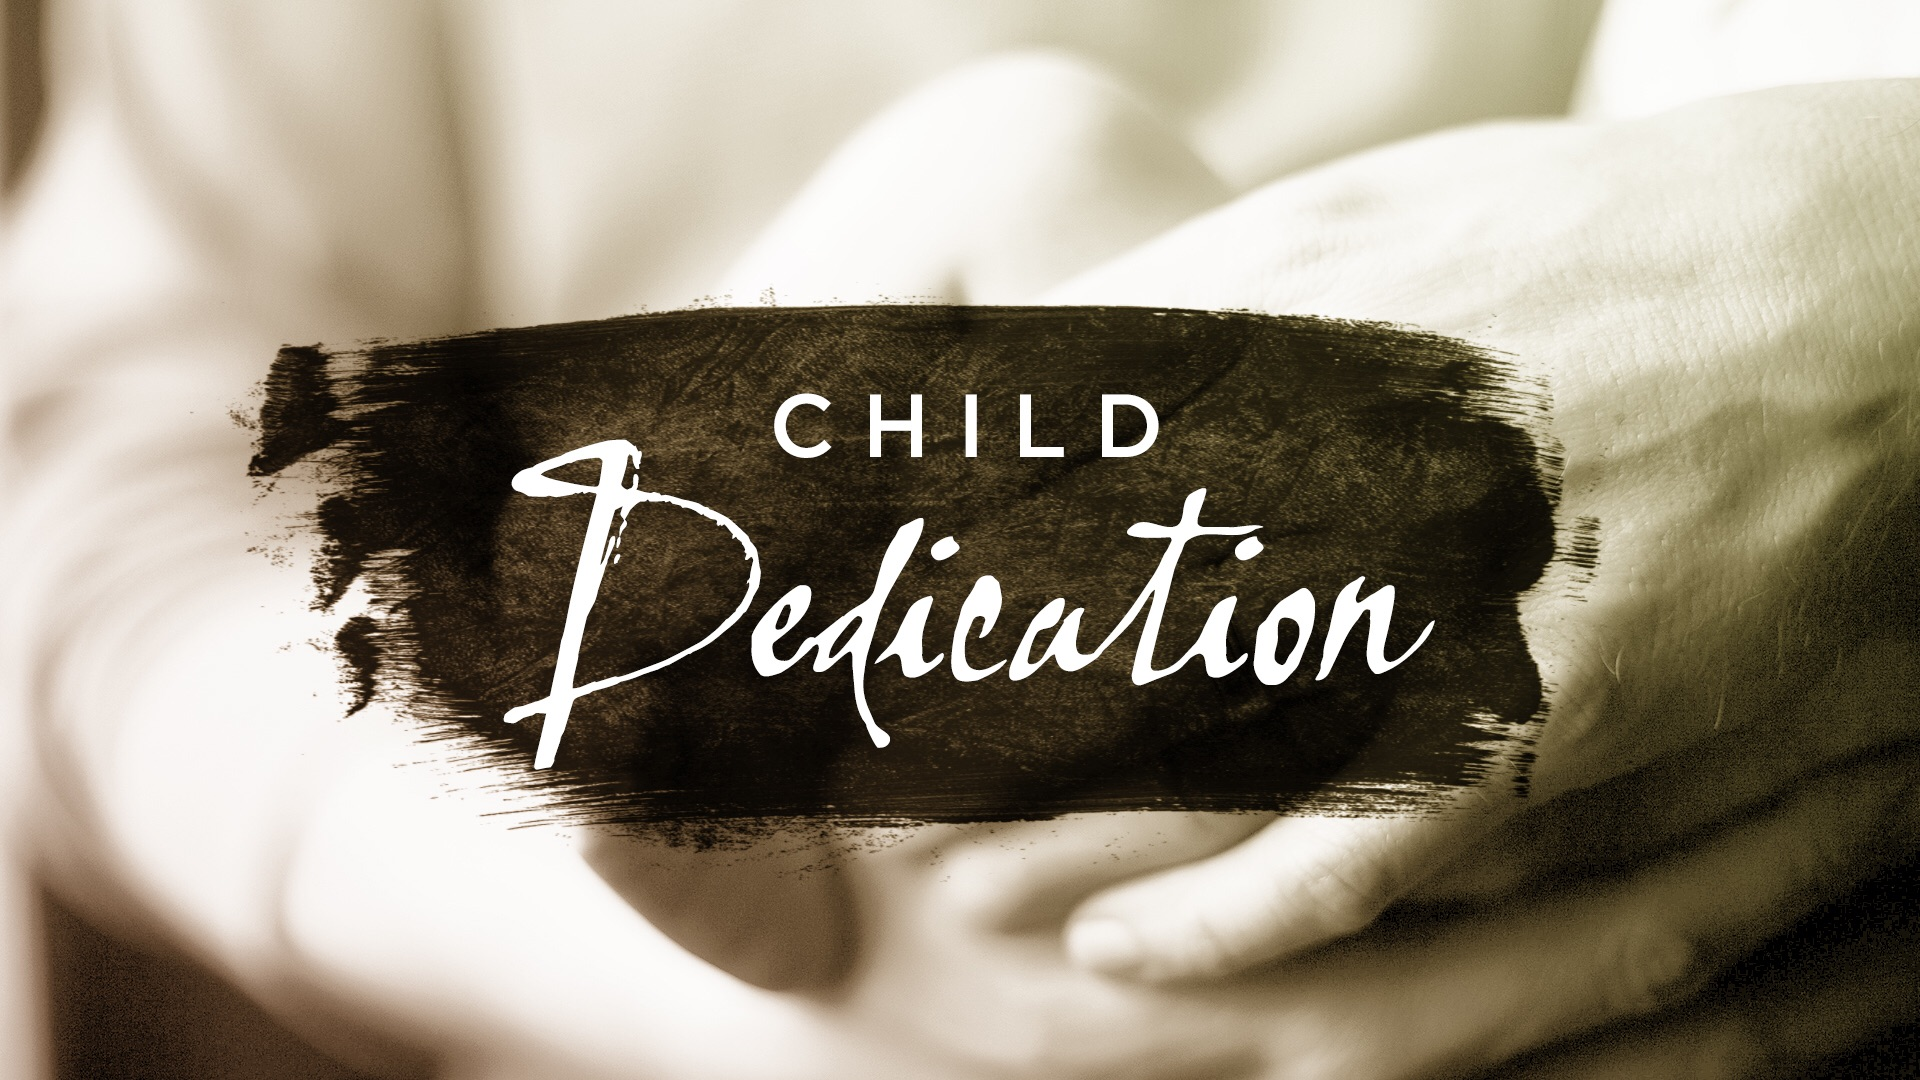 Child Dedication_2019 image